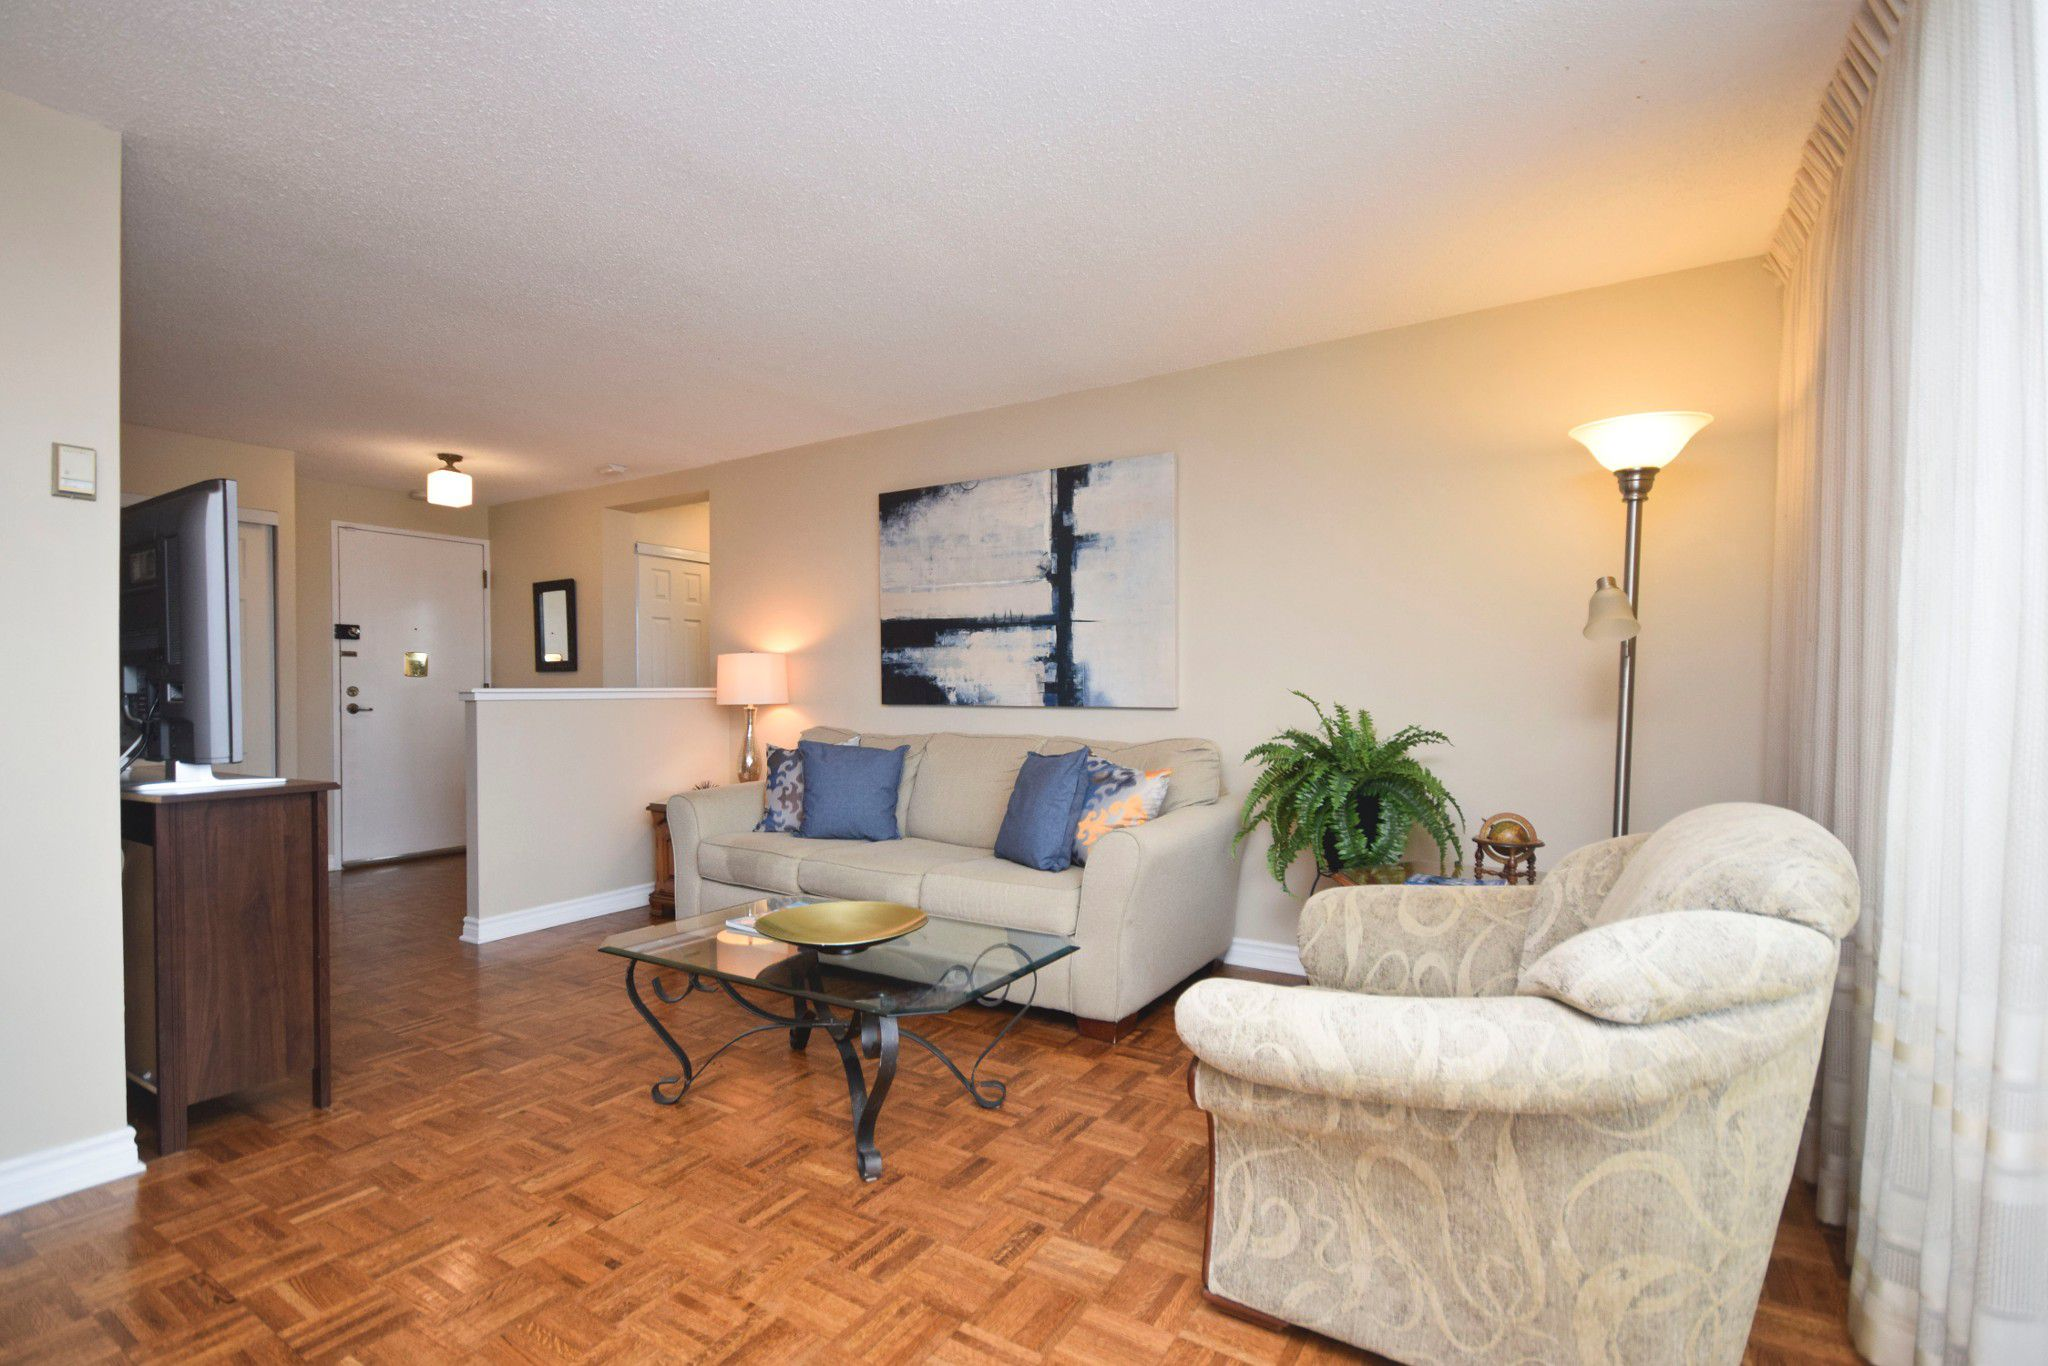 Photo 14: Photos: 515 1465 BASELINE Road in Ottawa: Copeland Park House for sale : MLS®# 1133550